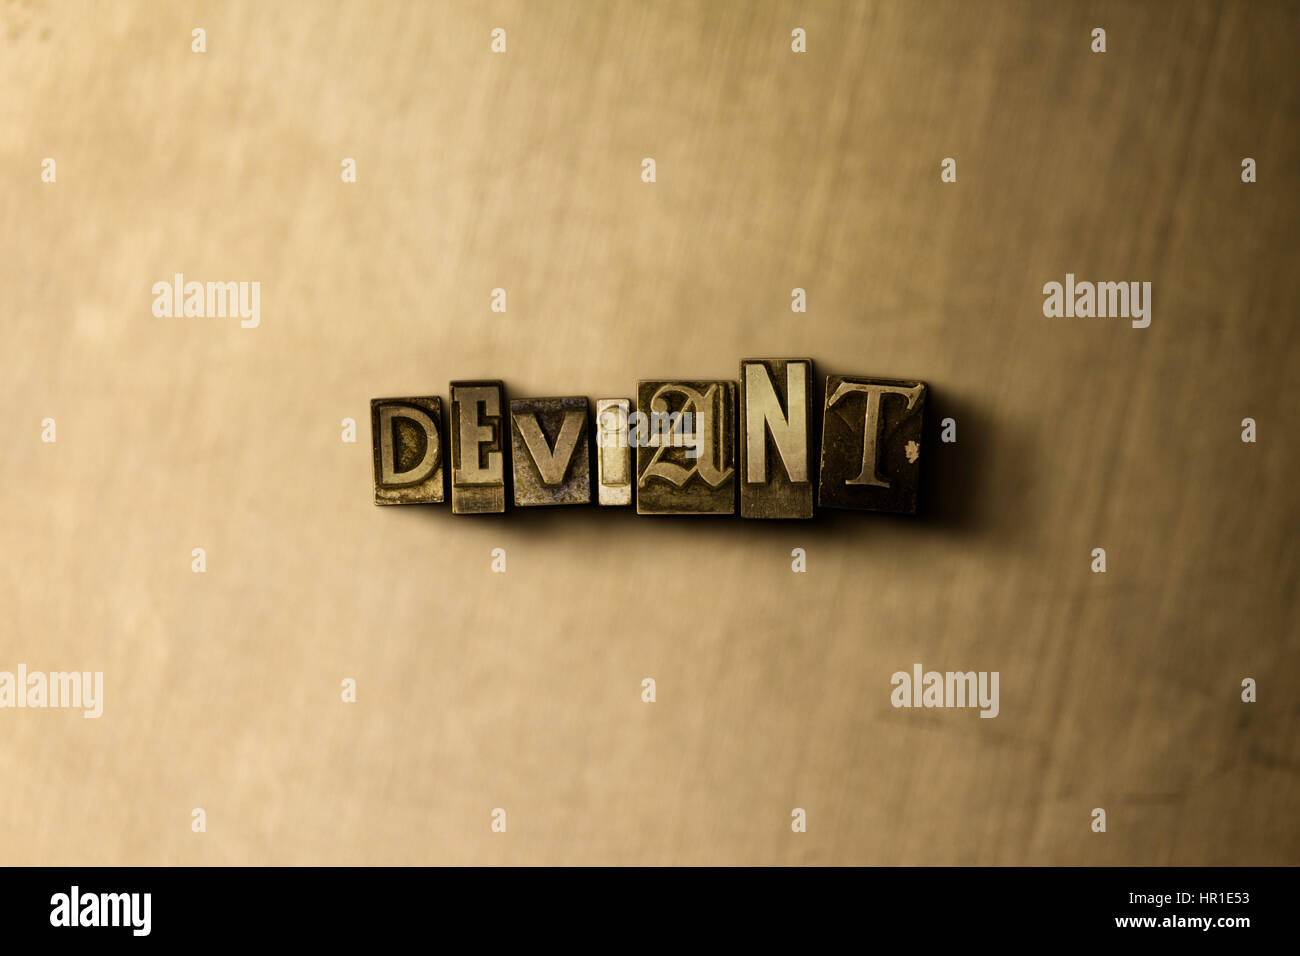 DEVIANT - close-up of grungy vintage typeset word on metal backdrop. Royalty free stock - 3D rendered stock image. - Stock Image